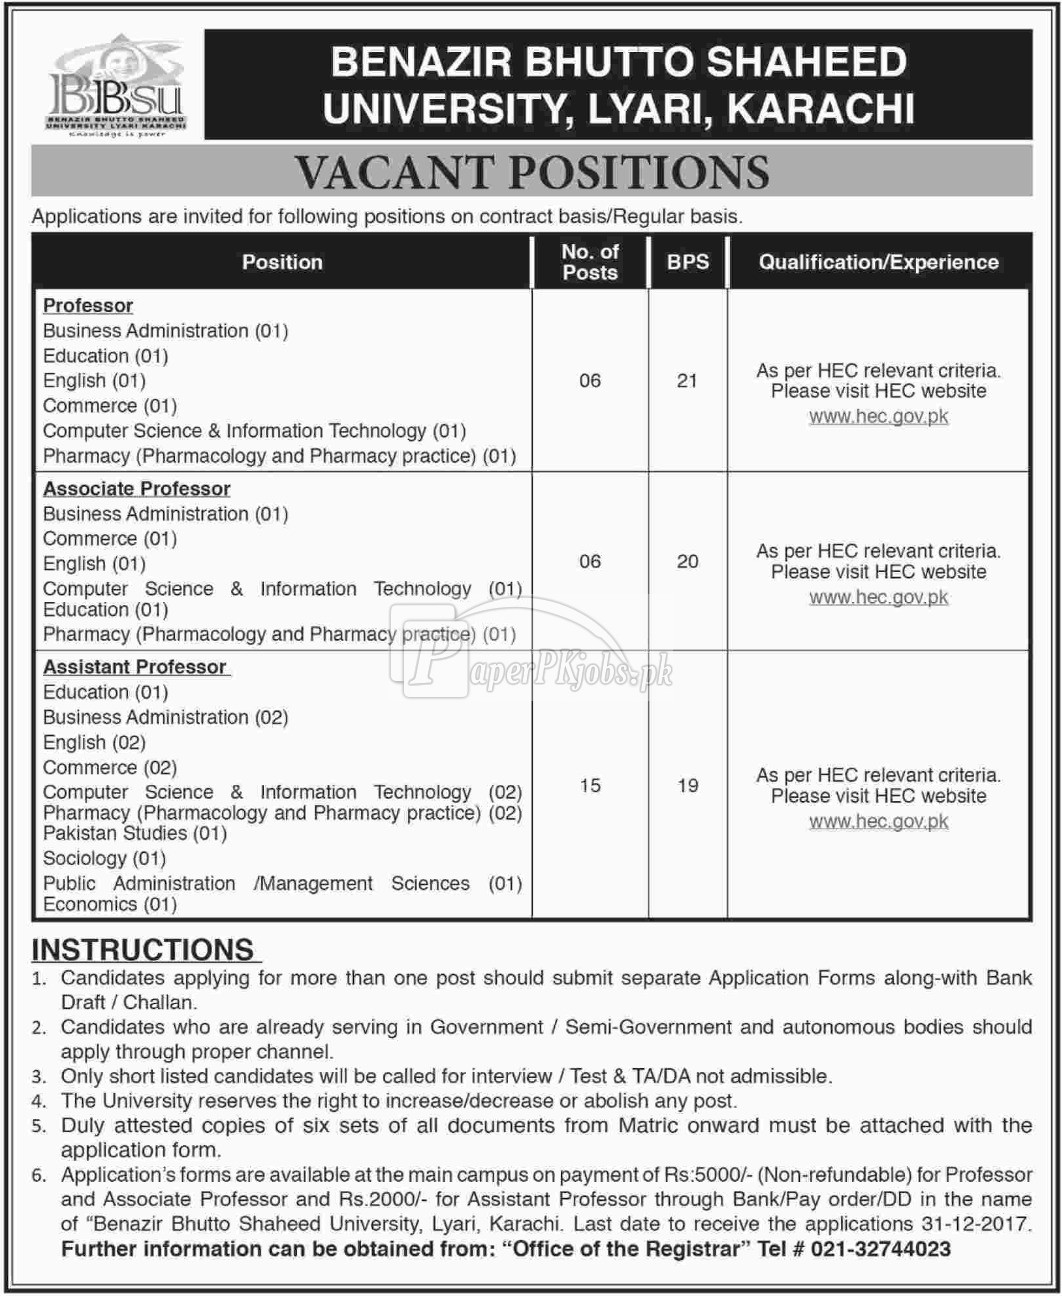 Benazir Bhutto Shaheed University Karachi Jobs 2017